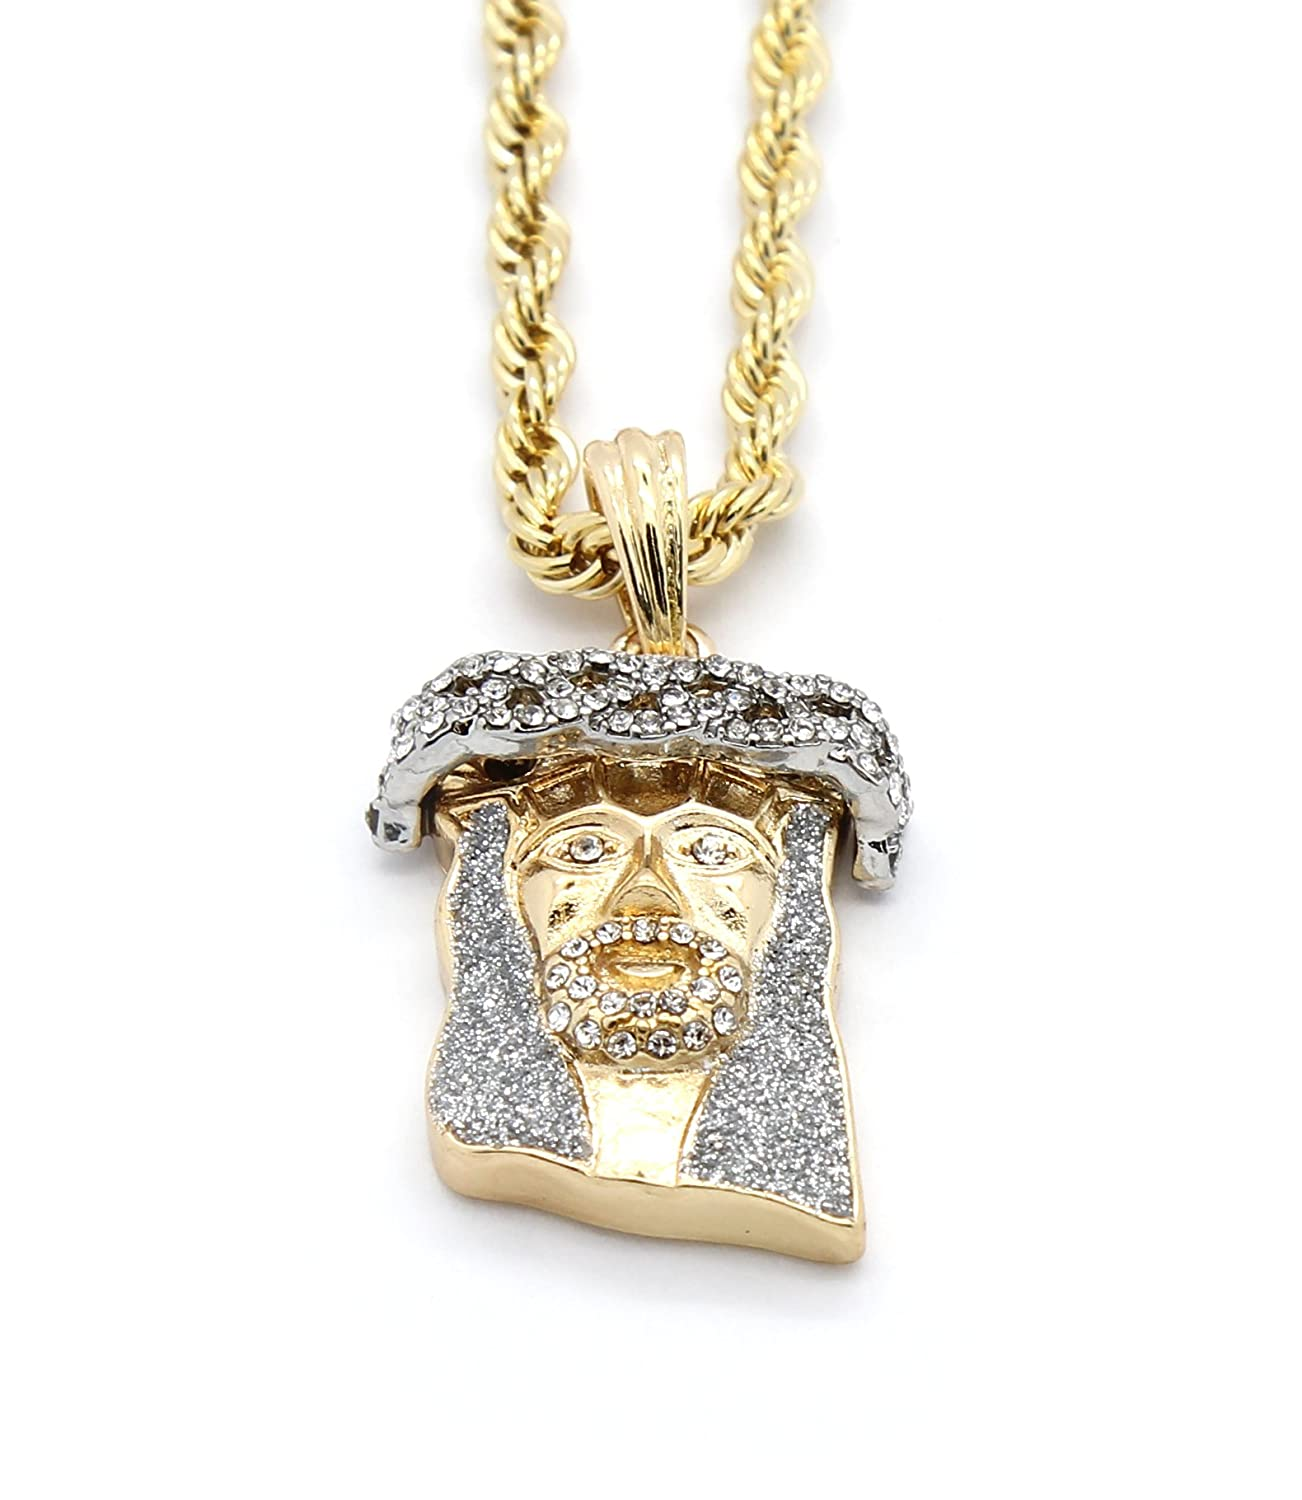 franco micro cuban the chains shop bundle gld products